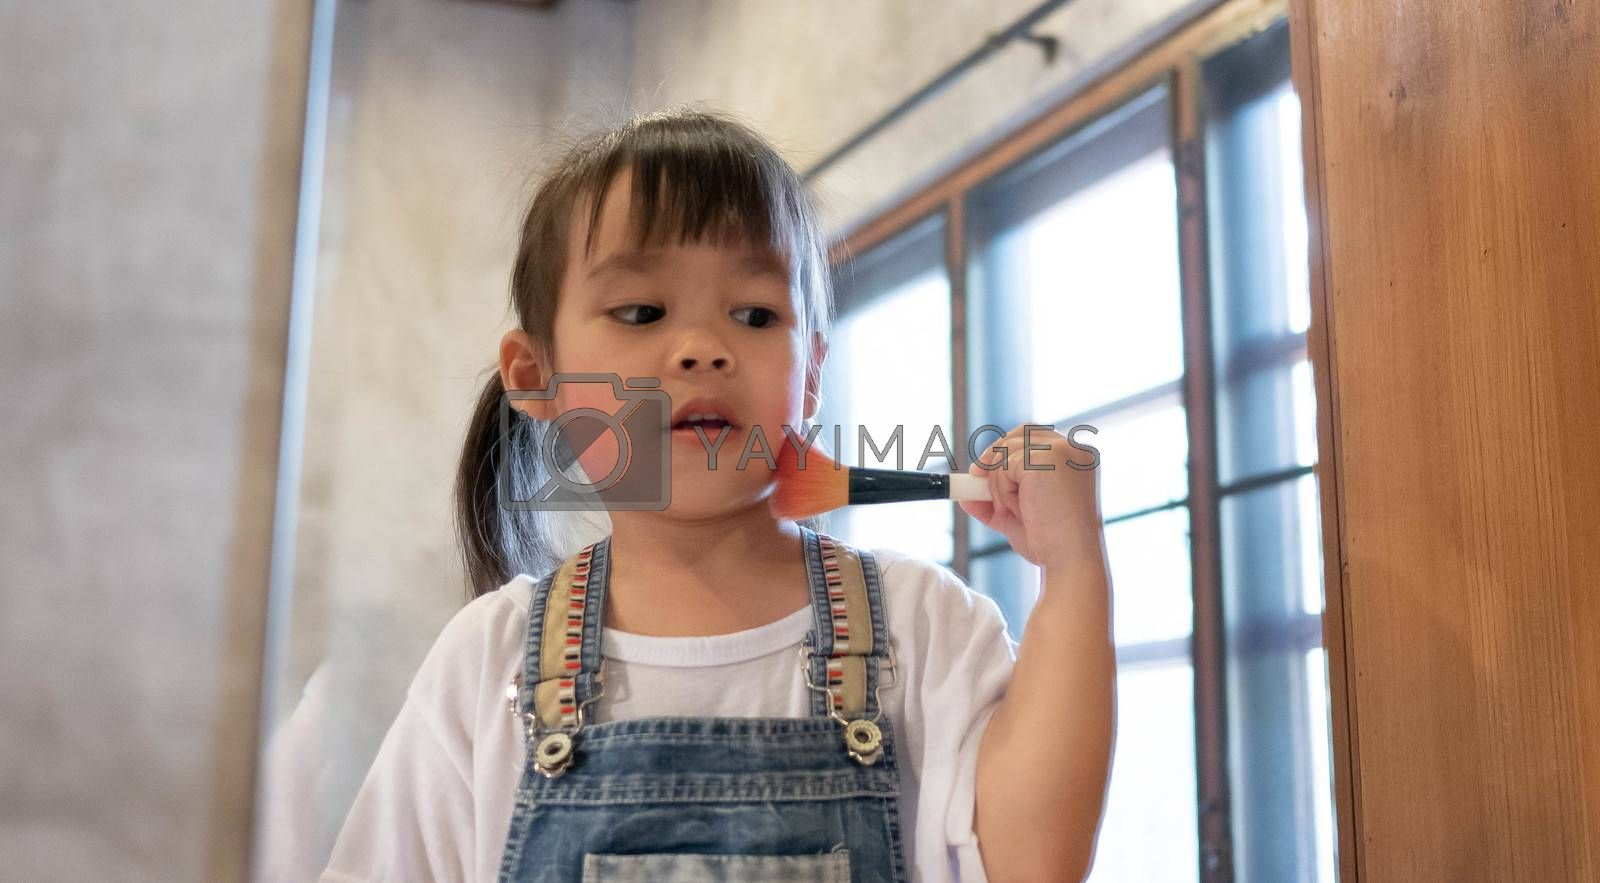 Cute little girl doing makeup and having fun brushing on cheek at a mirror in room.